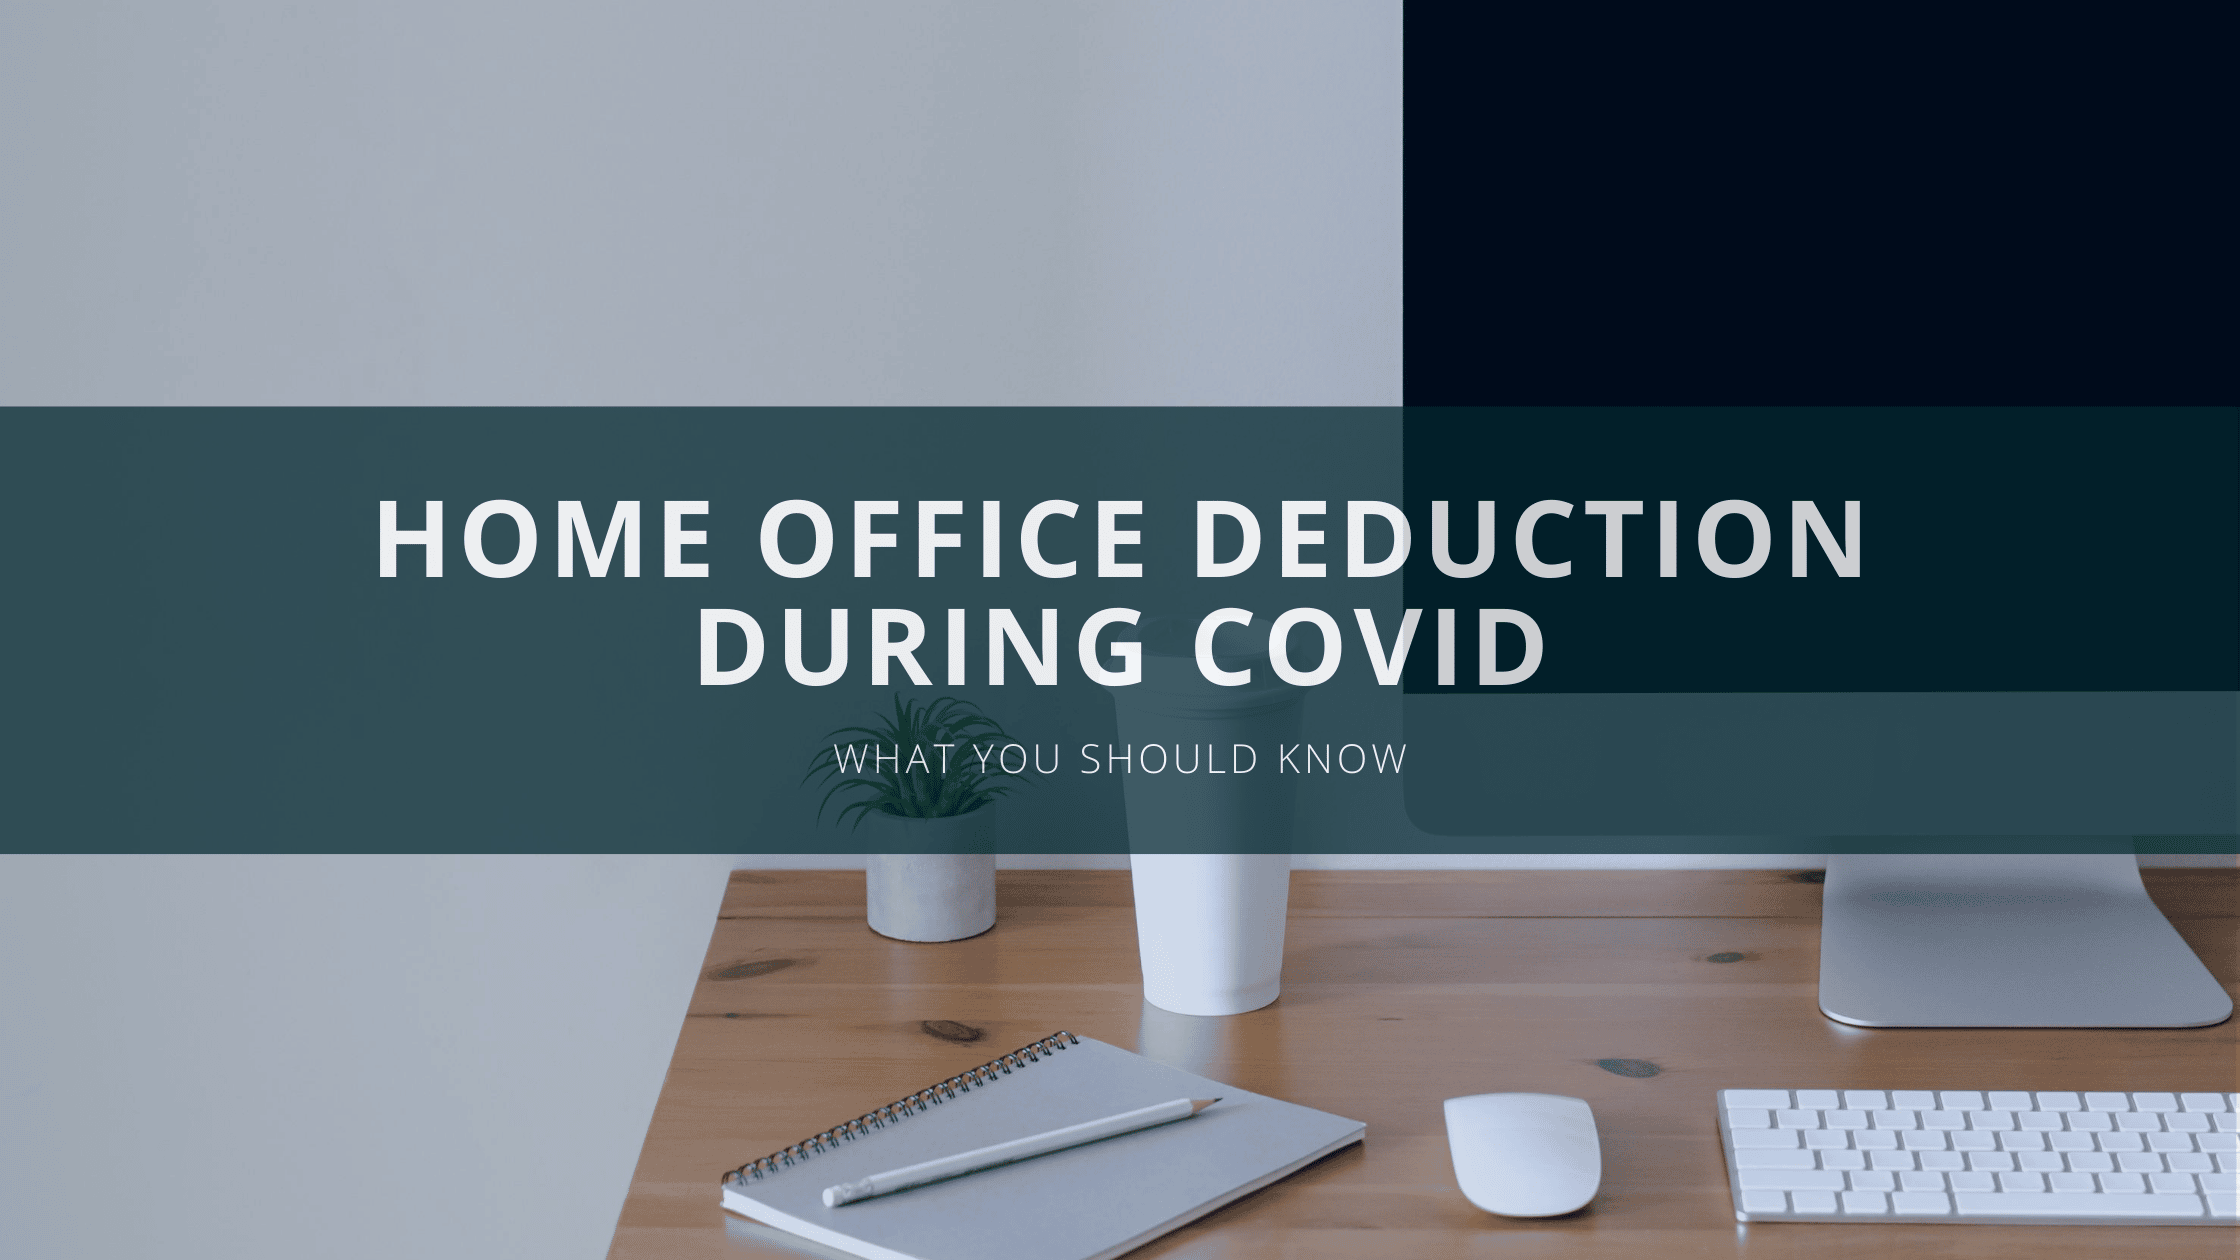 Home Office Deduction During Covid